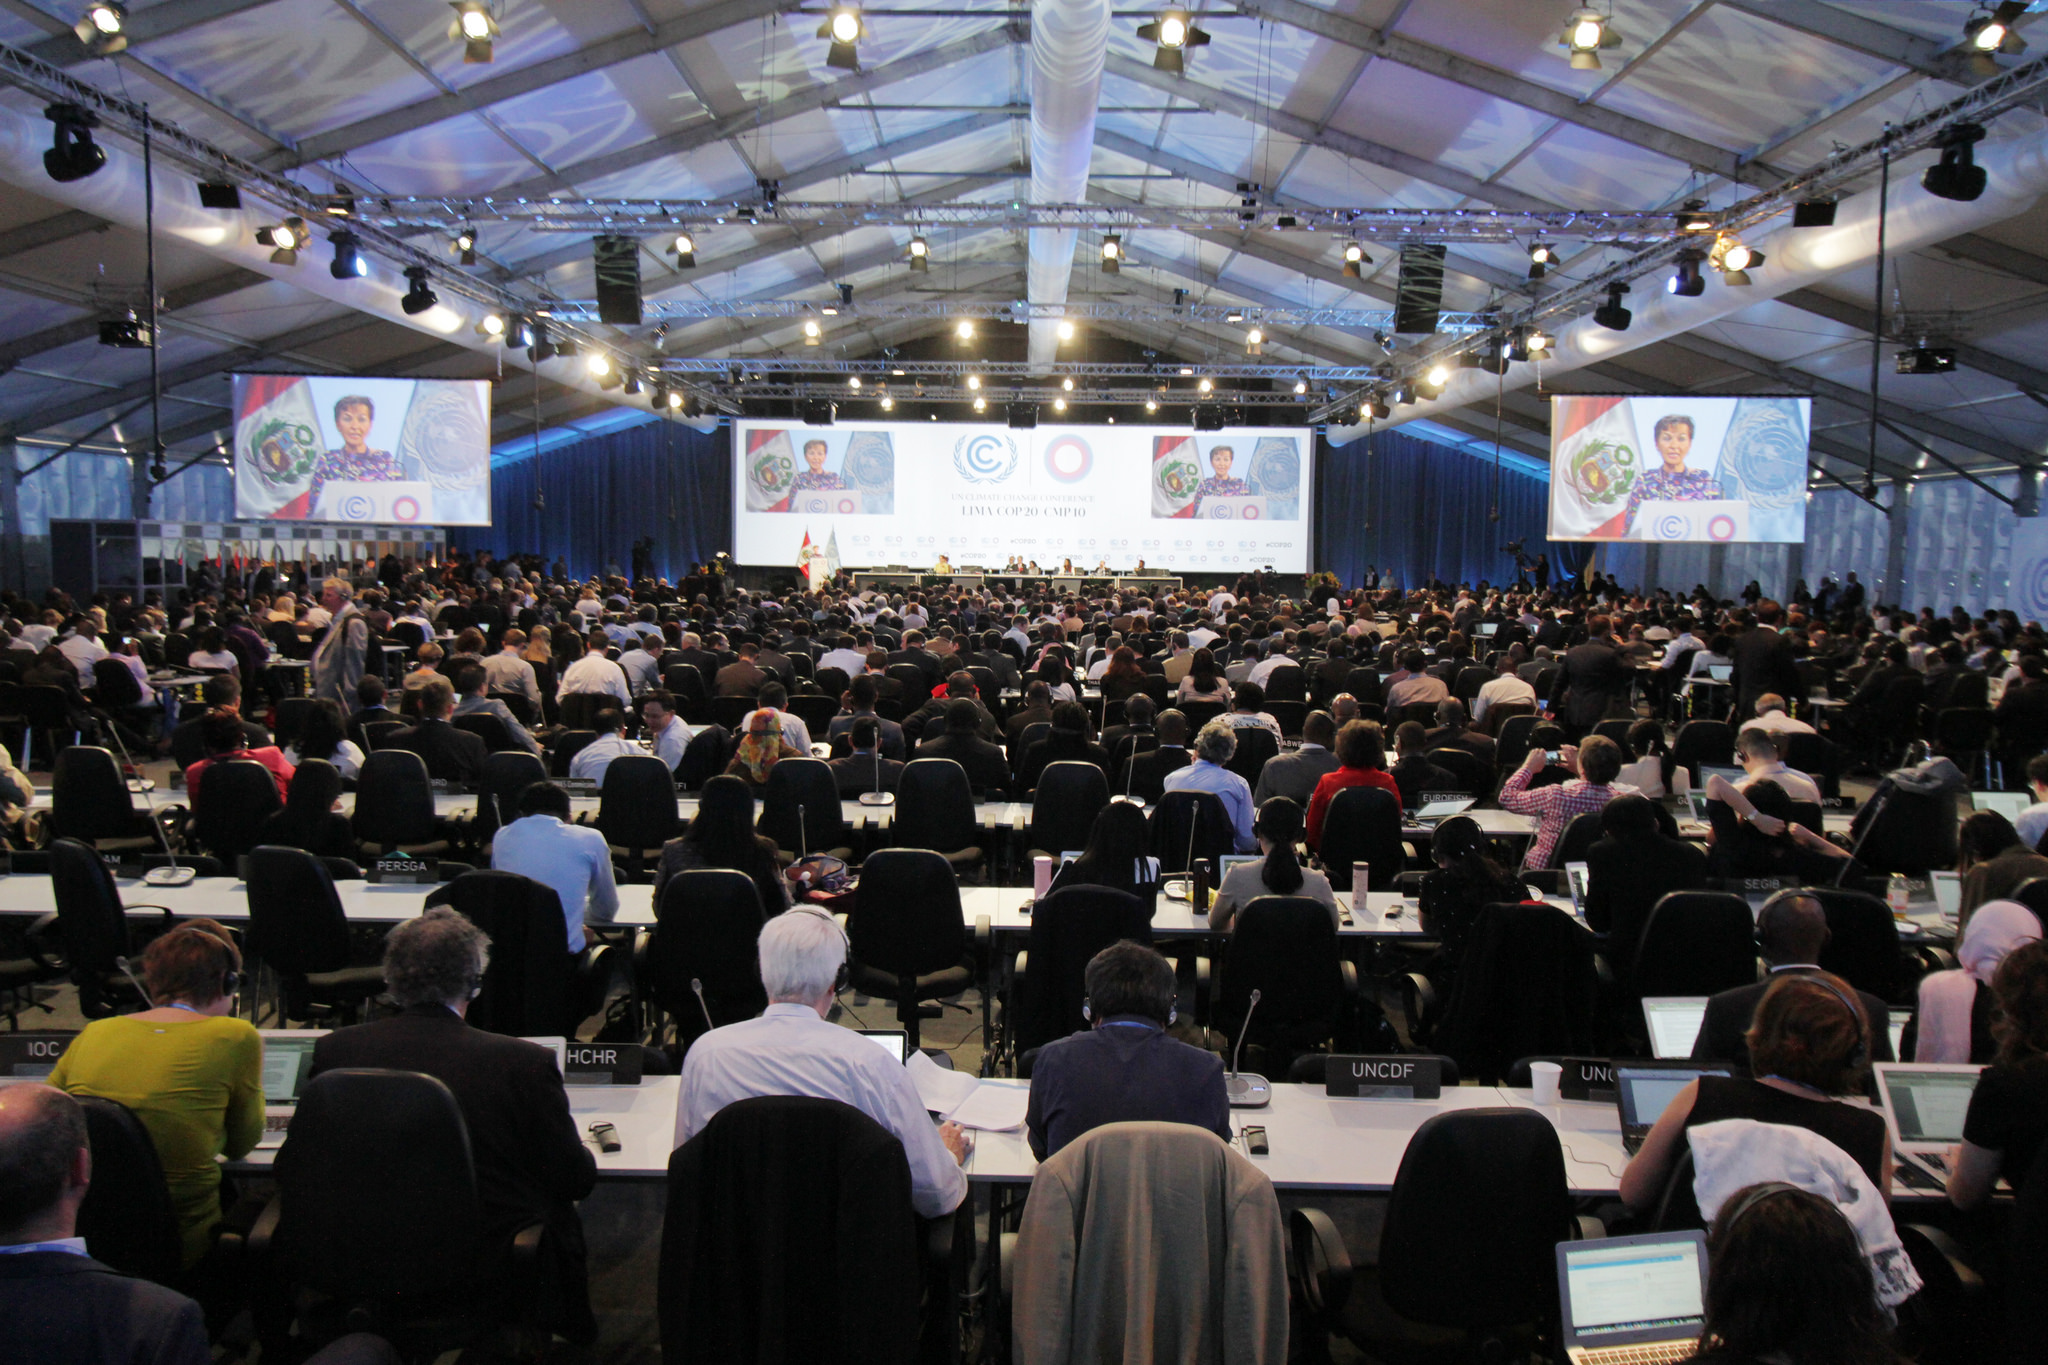 UN climate talks kicks off in Lima amid call for 'urgent action'